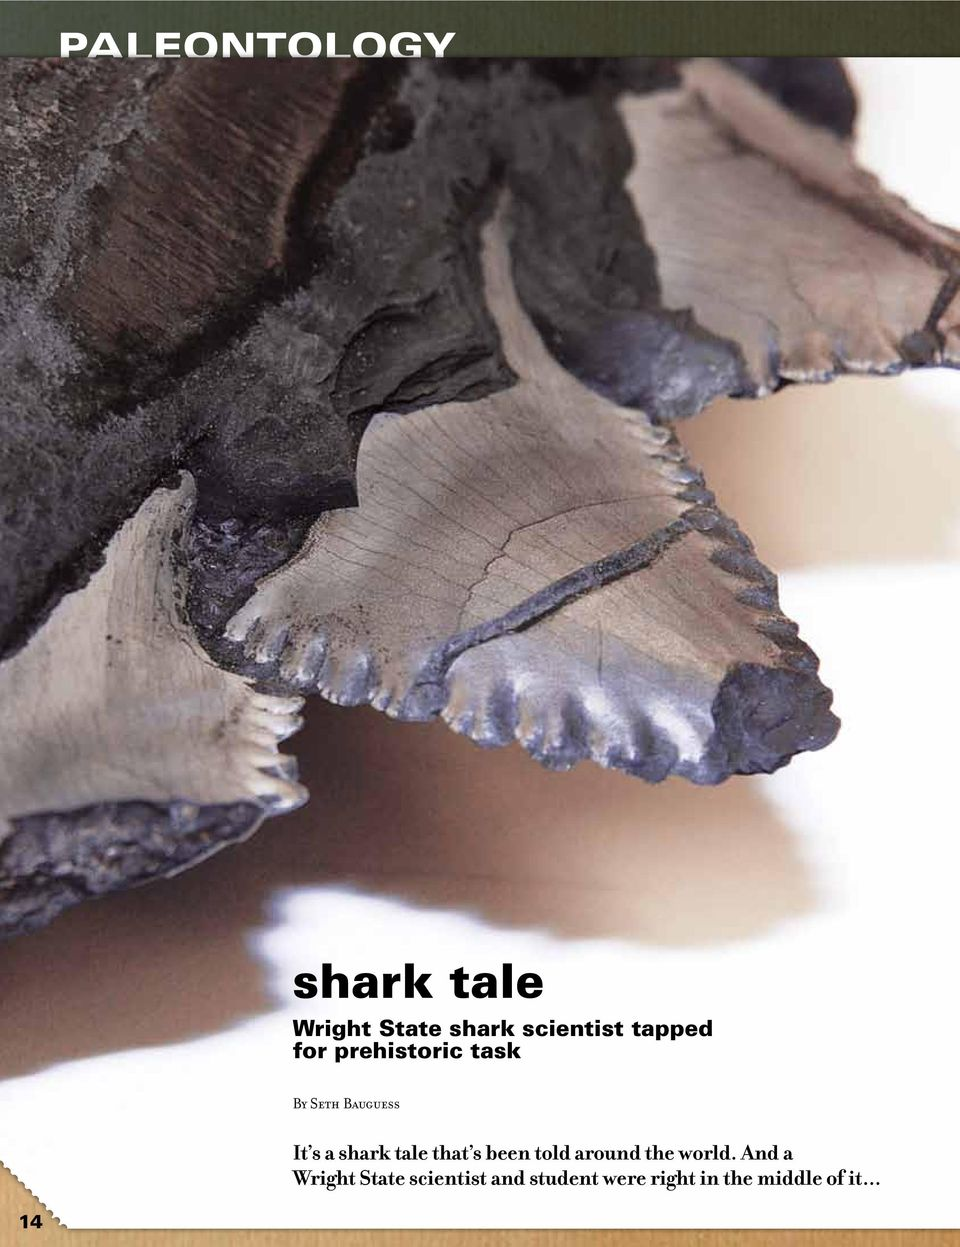 shark tale that s been told around the world.